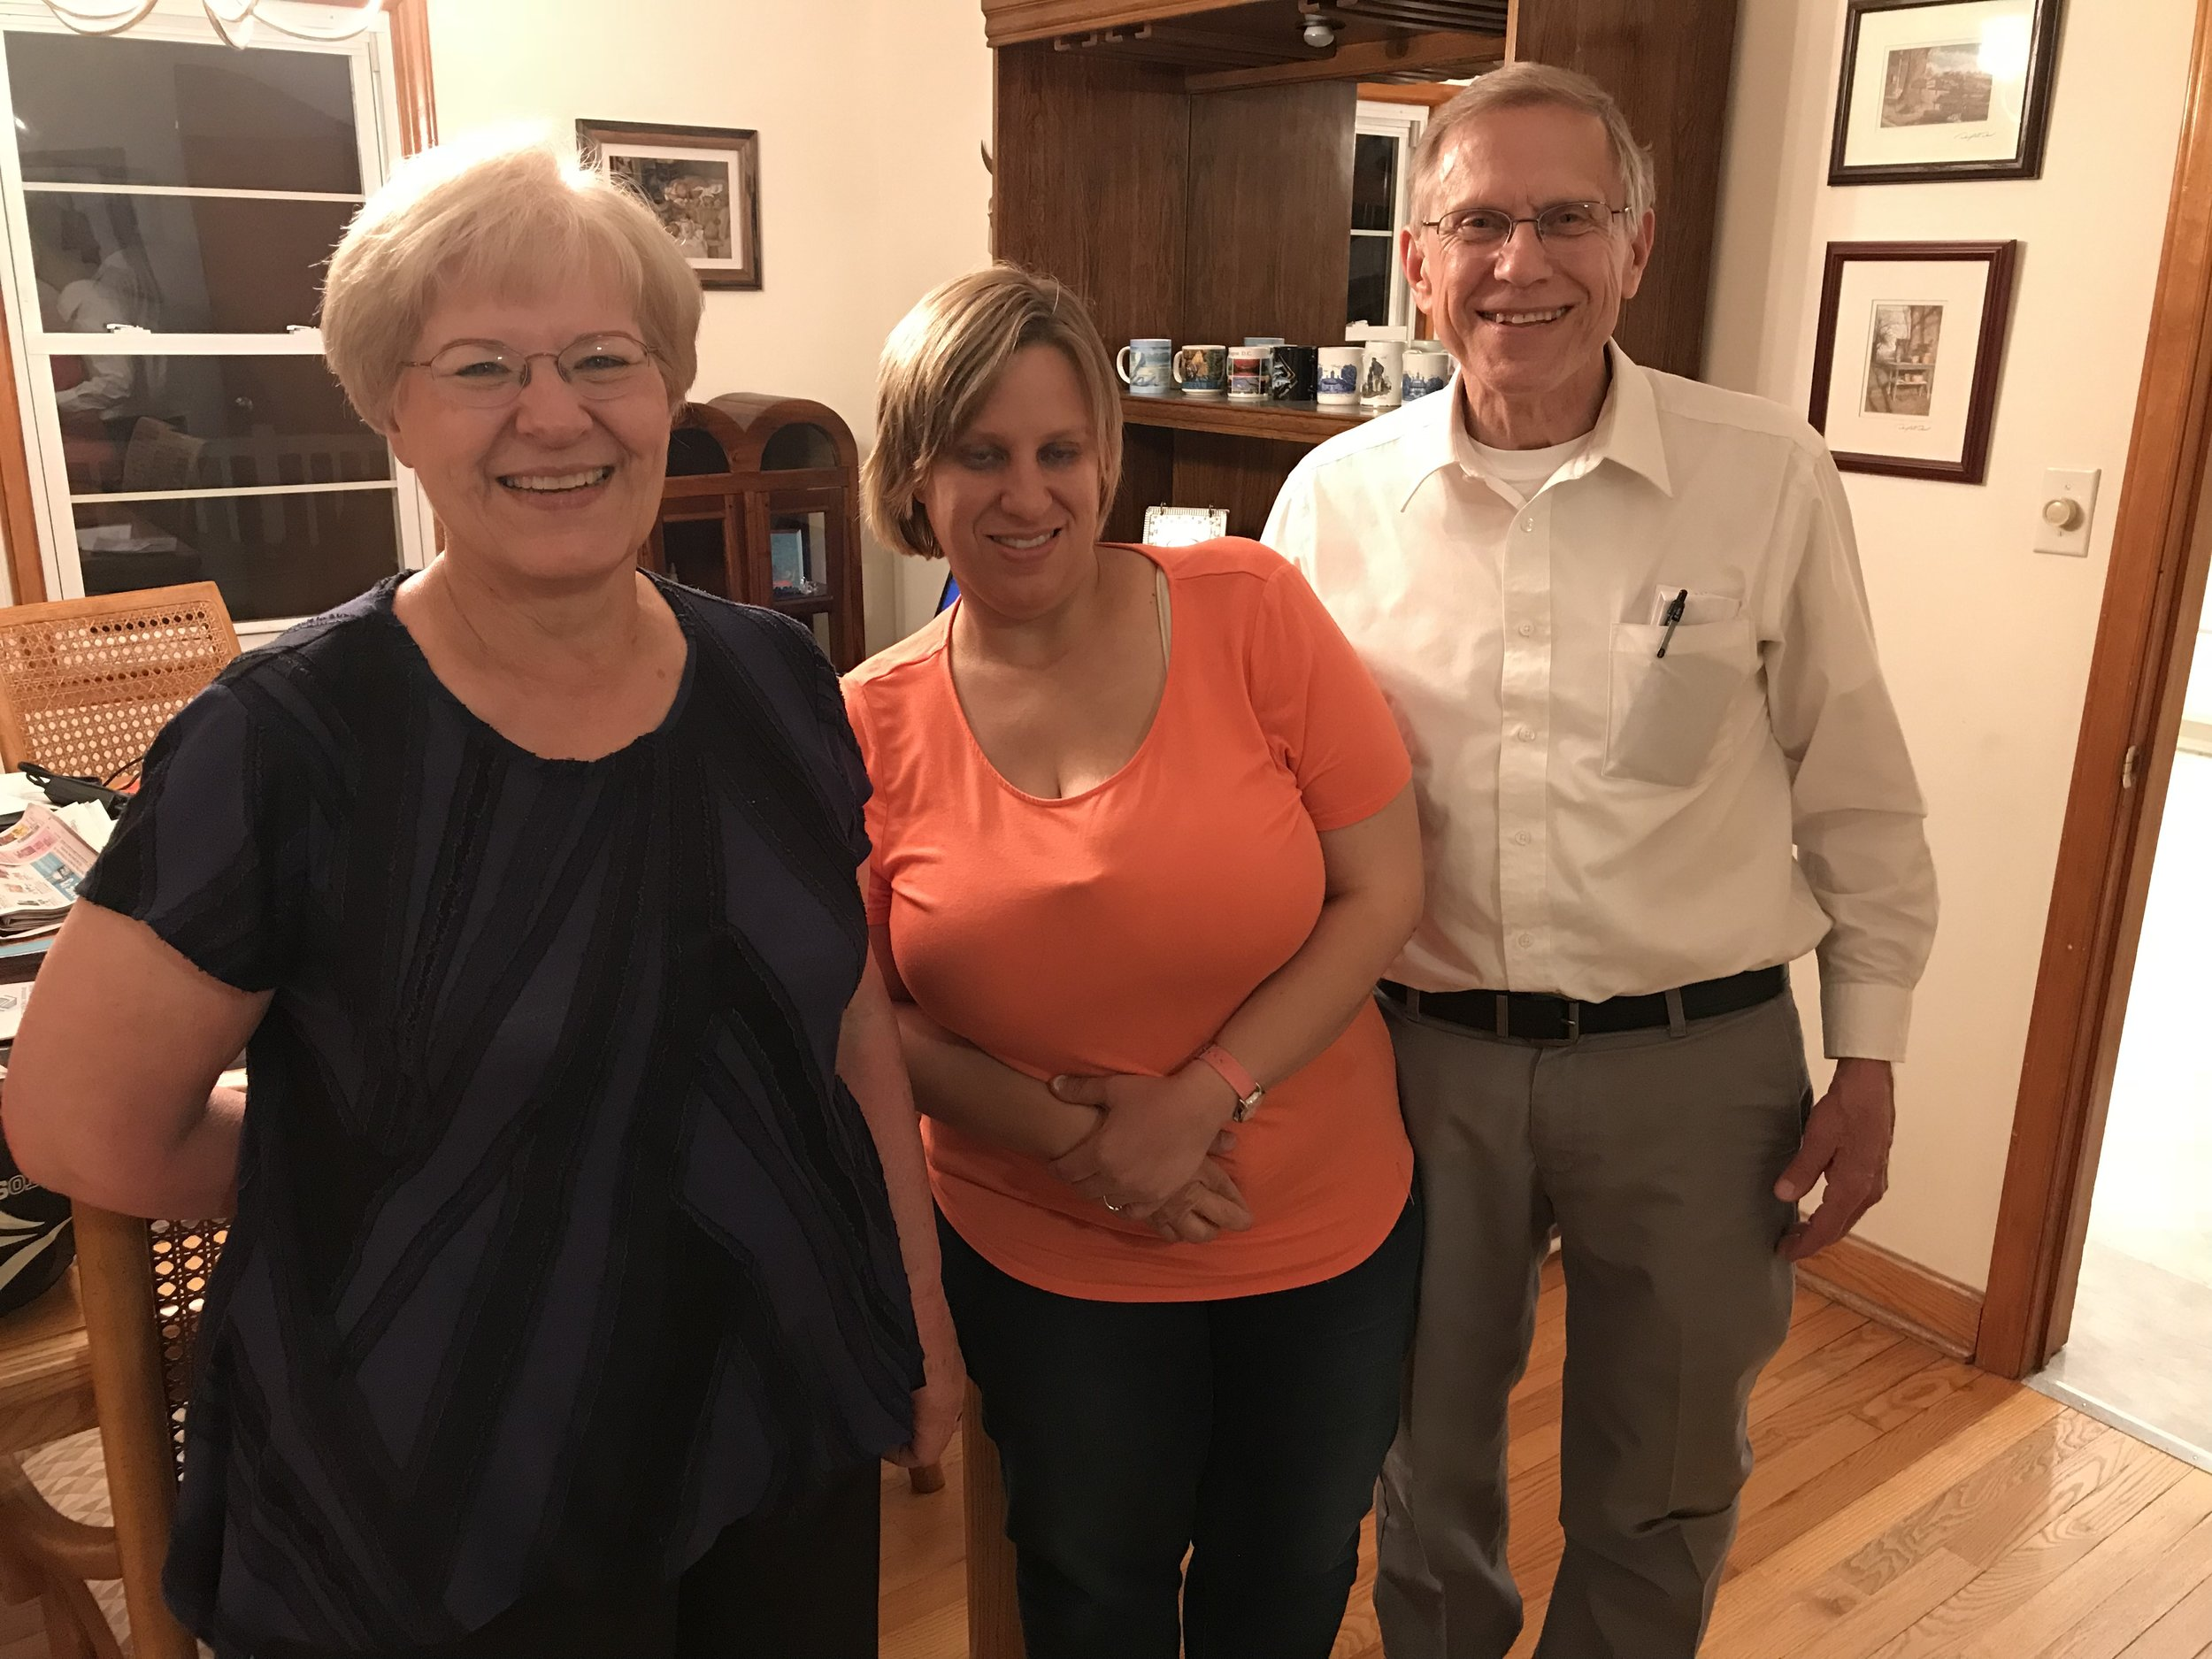 Rita, daughter Jessica, and George (pastor of Palmyra United Methodist Church) who graciously allowed us to take showers at their home. We must have looked really dirty!! What a sweet and welcoming family!